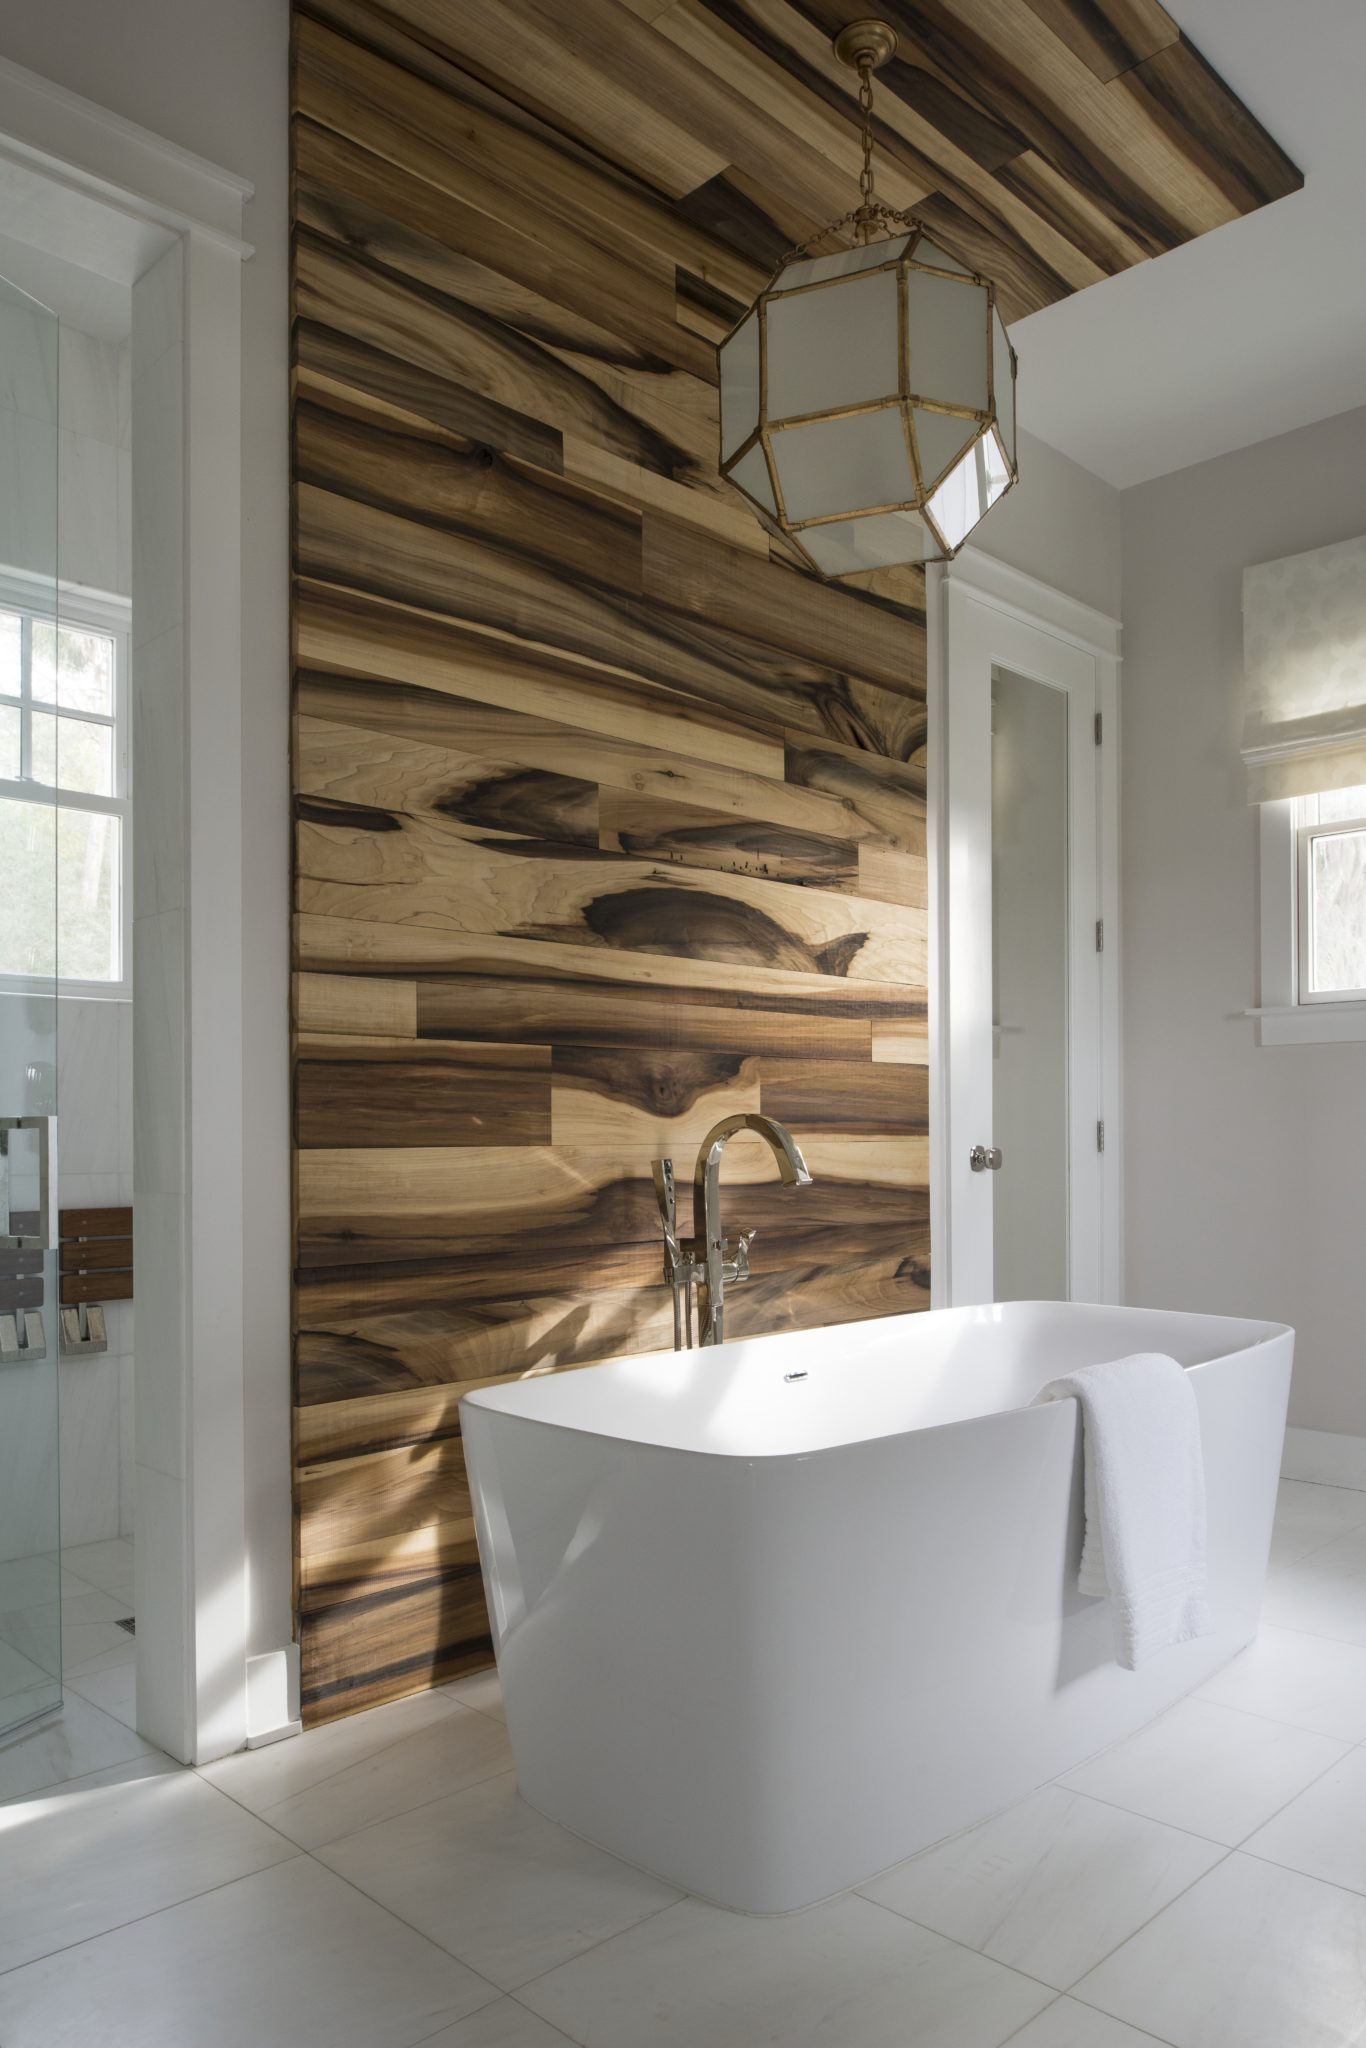 Sophisticated river home master bath by John McClain Design